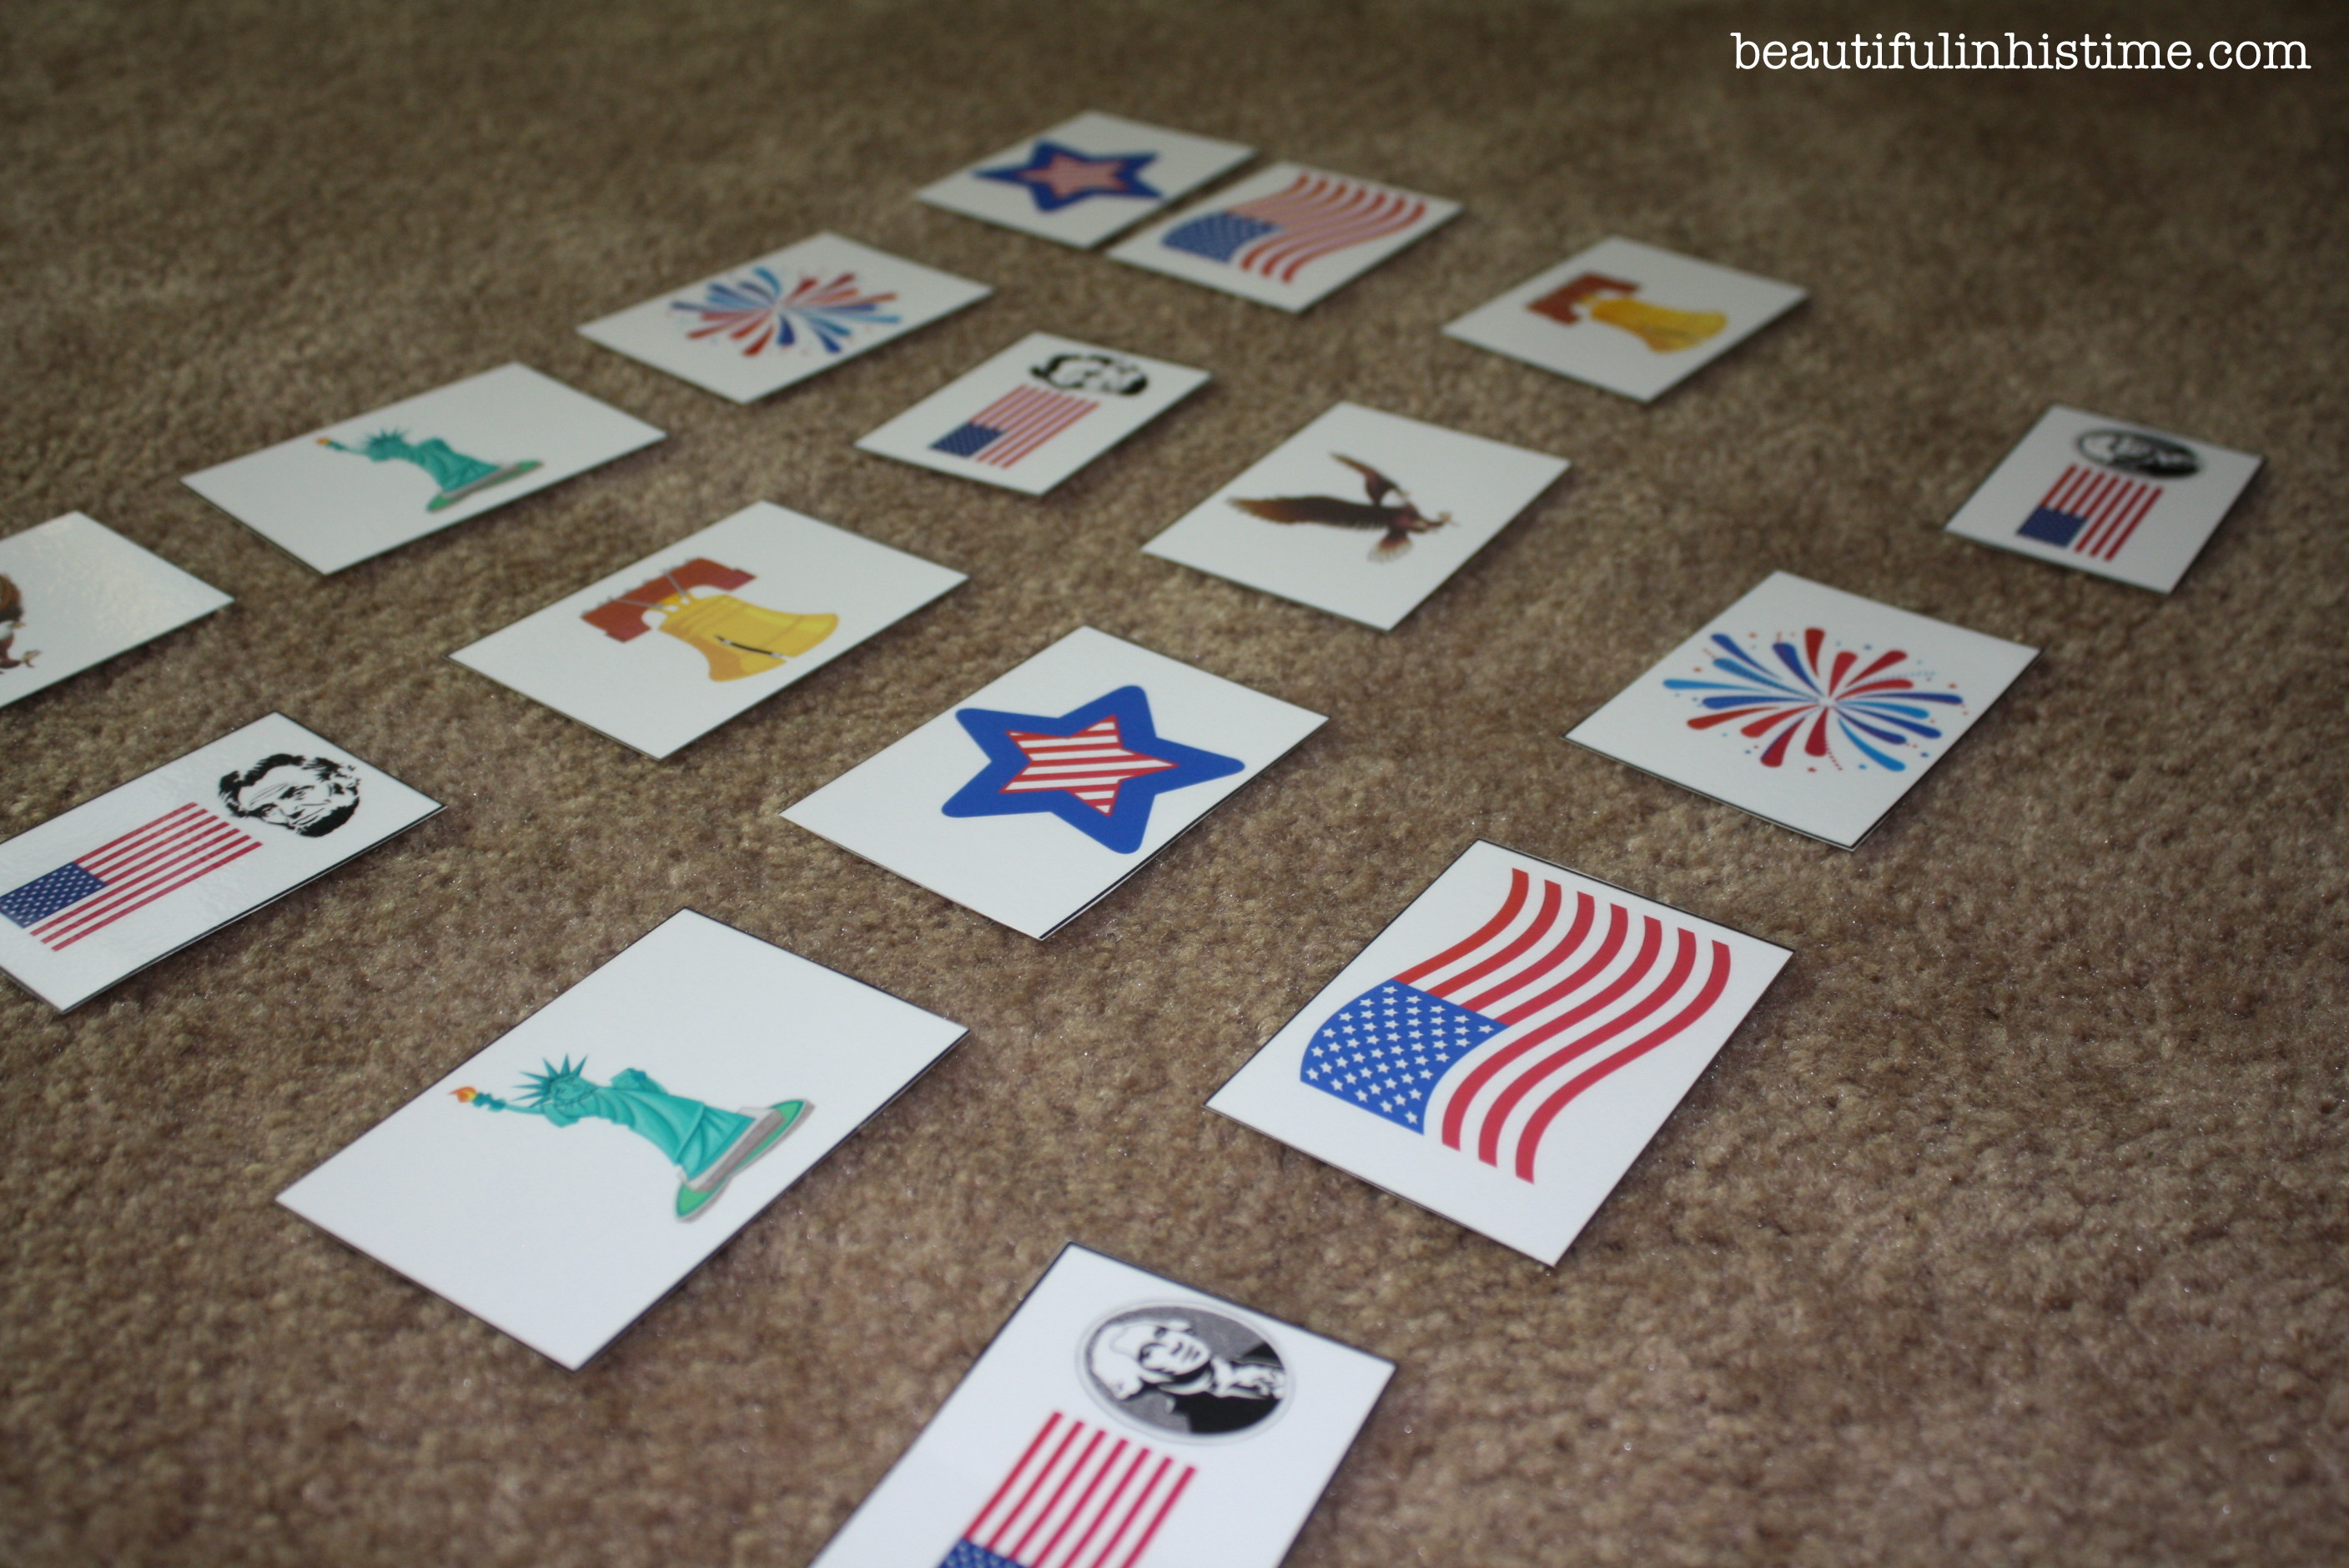 patriotic matching game flashcards #patriotic #preschool #homeschool #4thofjuly #independenceday